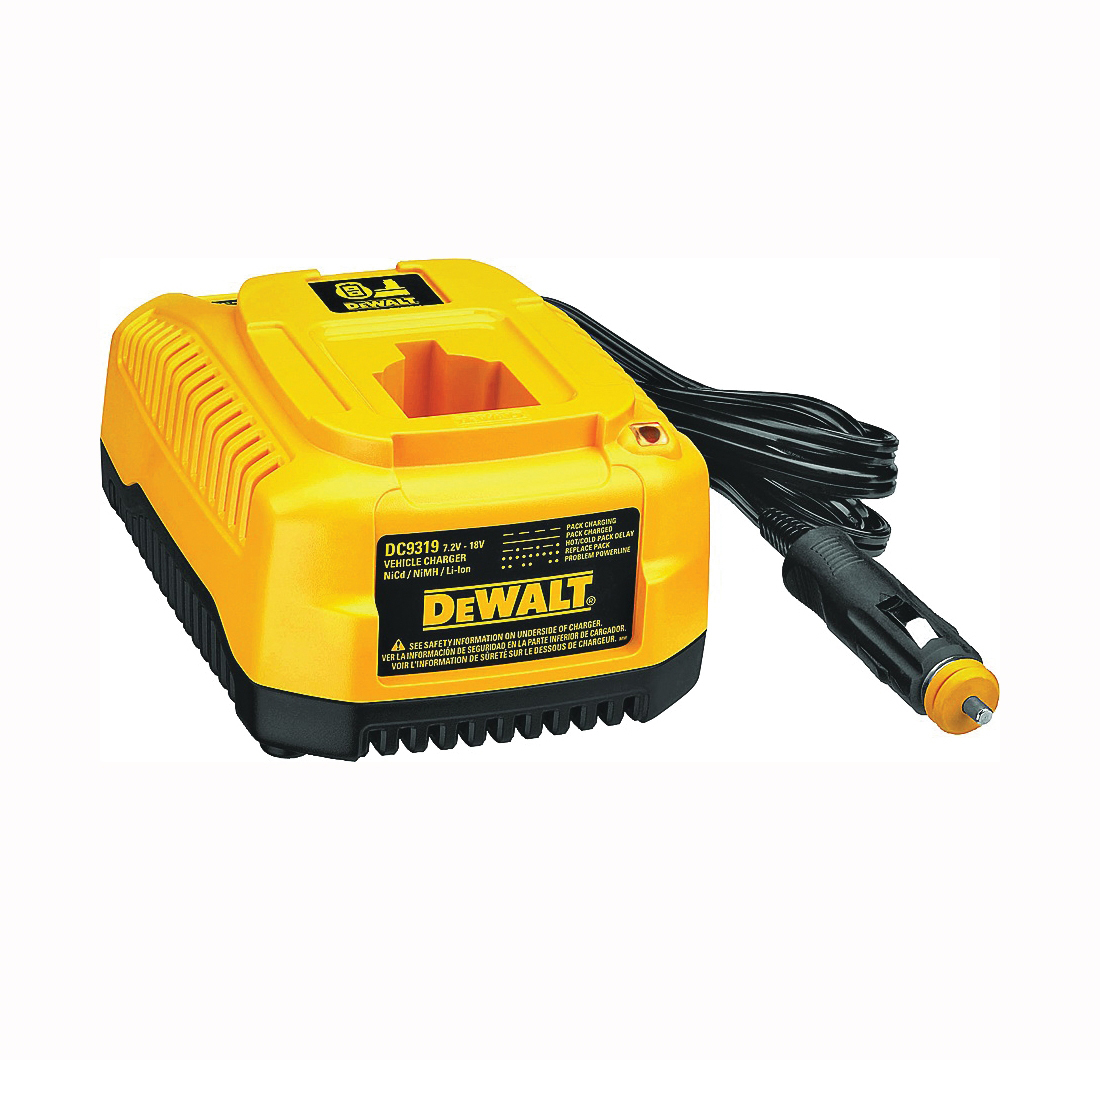 Picture of DeWALT DC9319 Vehicle Charger, 12 VDC Output, 1 hr Charge, 3 -Battery, Battery Included: No